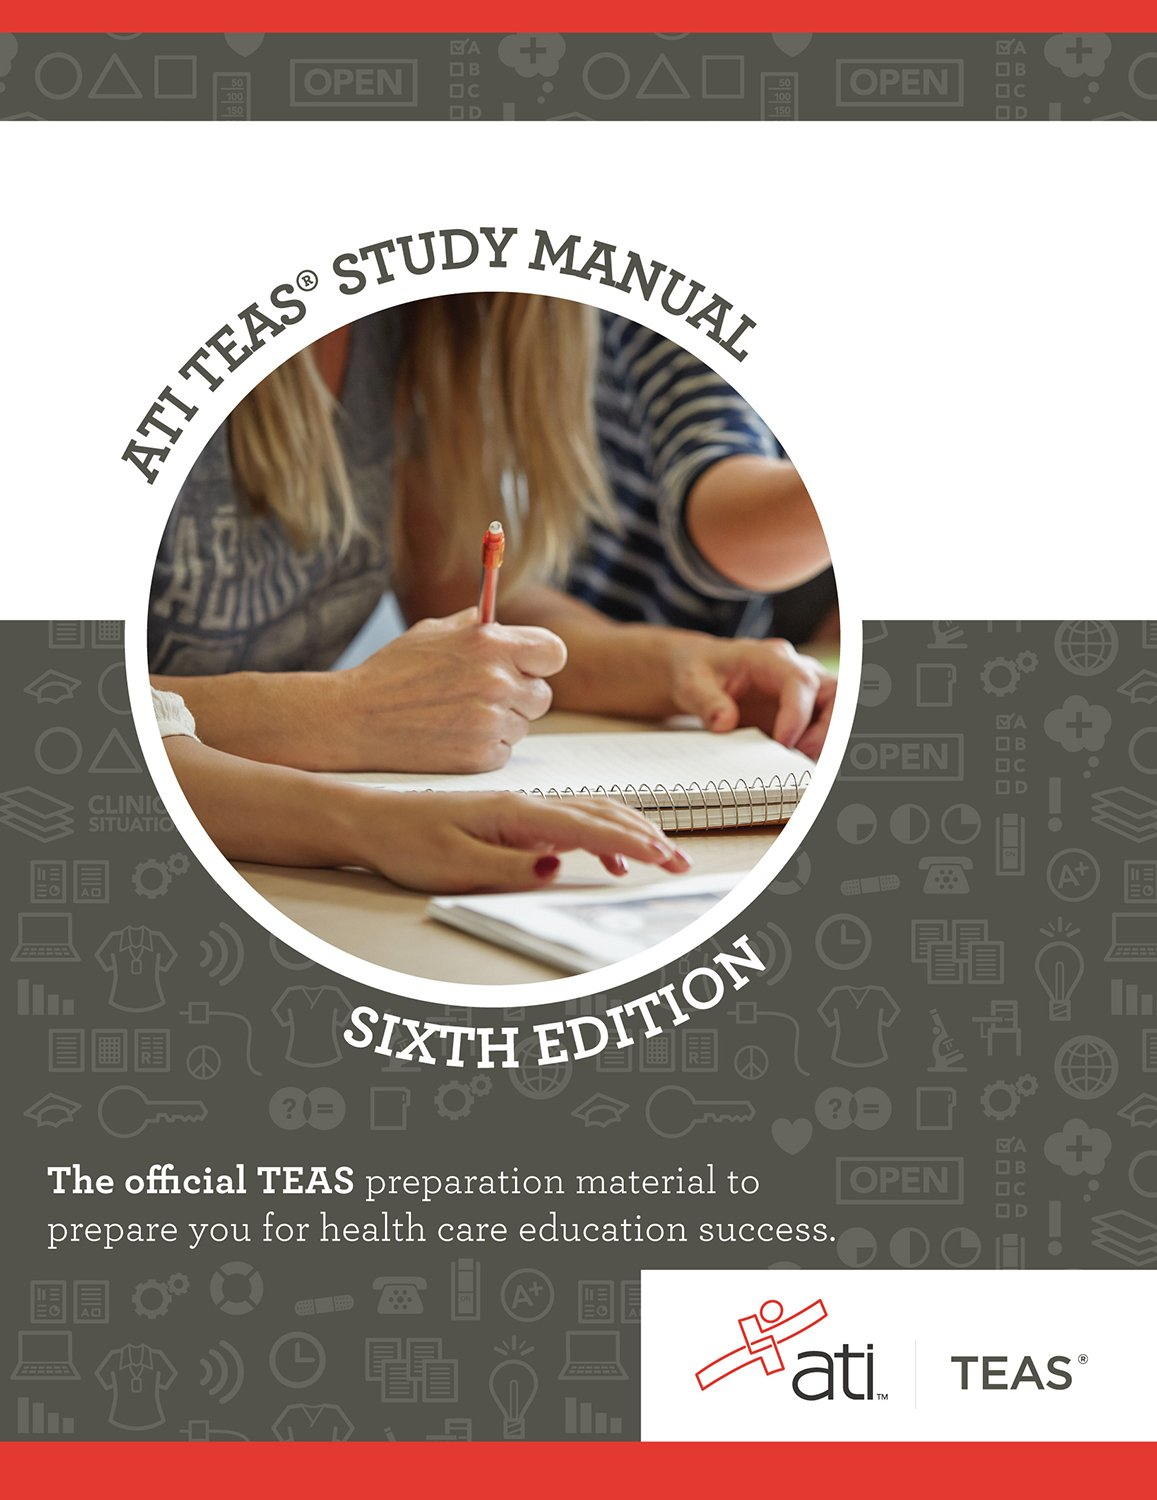 ATI TEAS Review Manual: Sixth Edition Revised by Jones Bartlett Learning